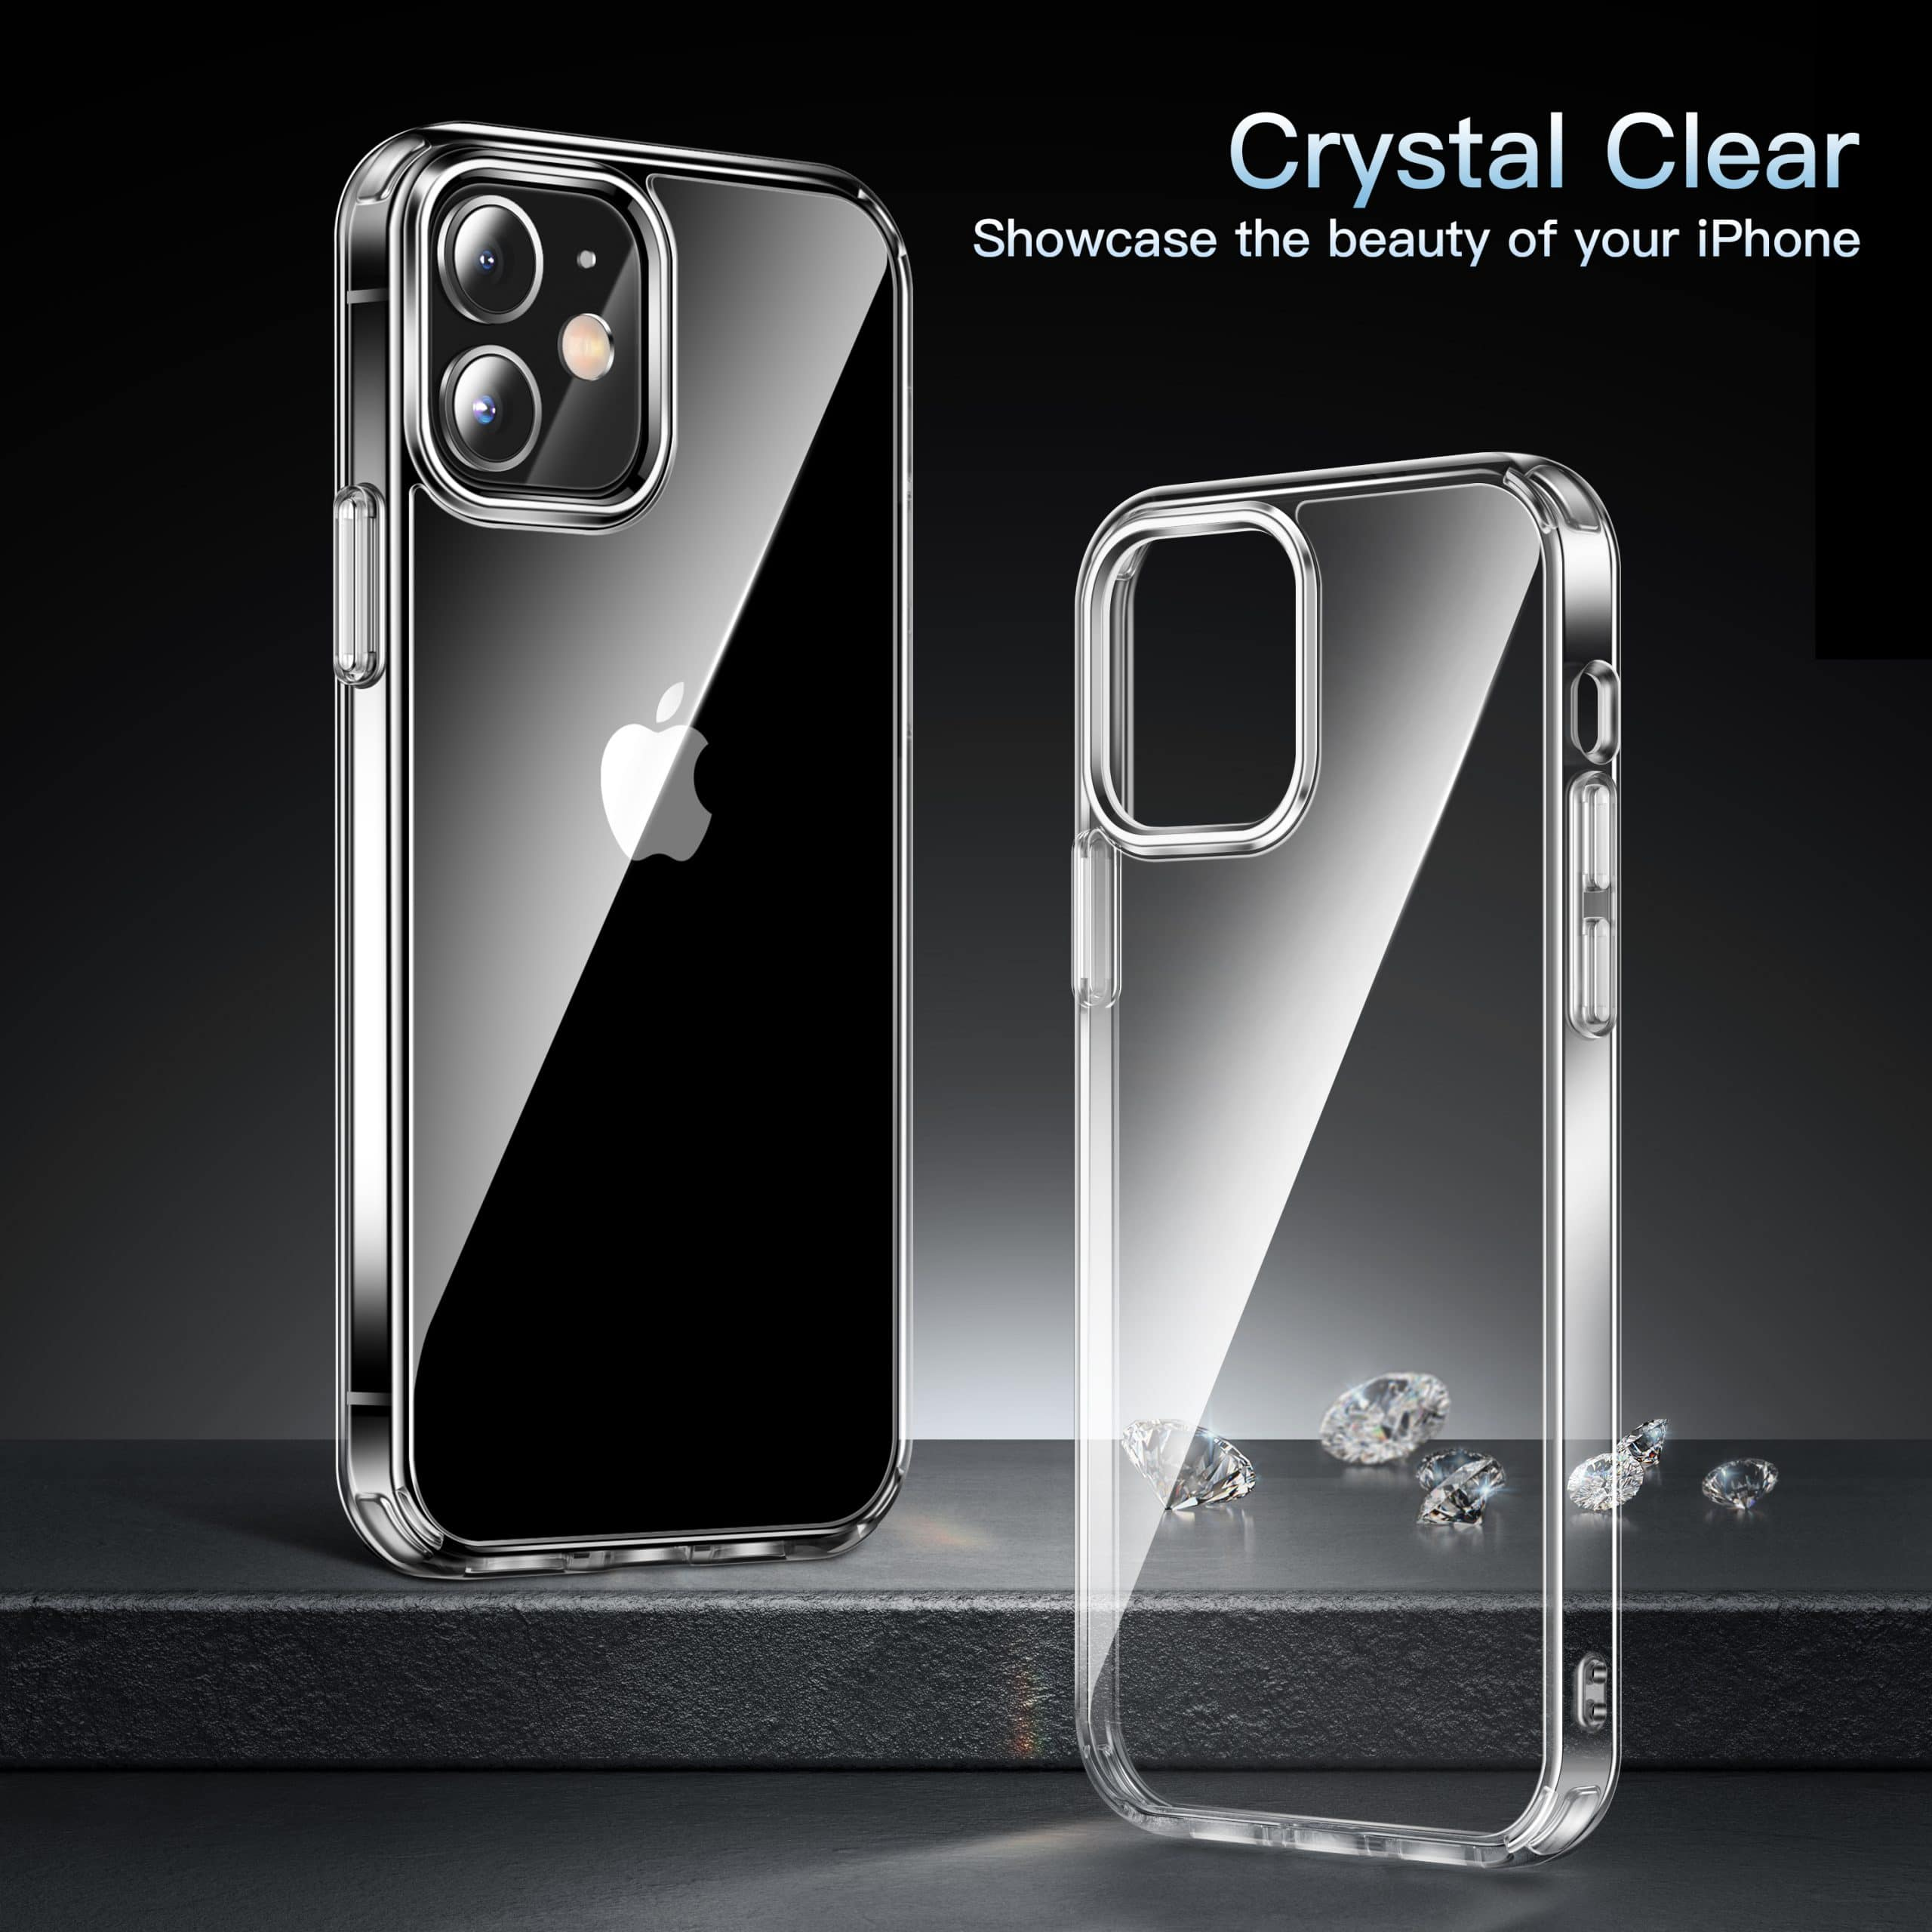 2 CASE iPhone 12 Mini 5.4 Clear Crystal Case Soft Shockproof Protective USA  eBay